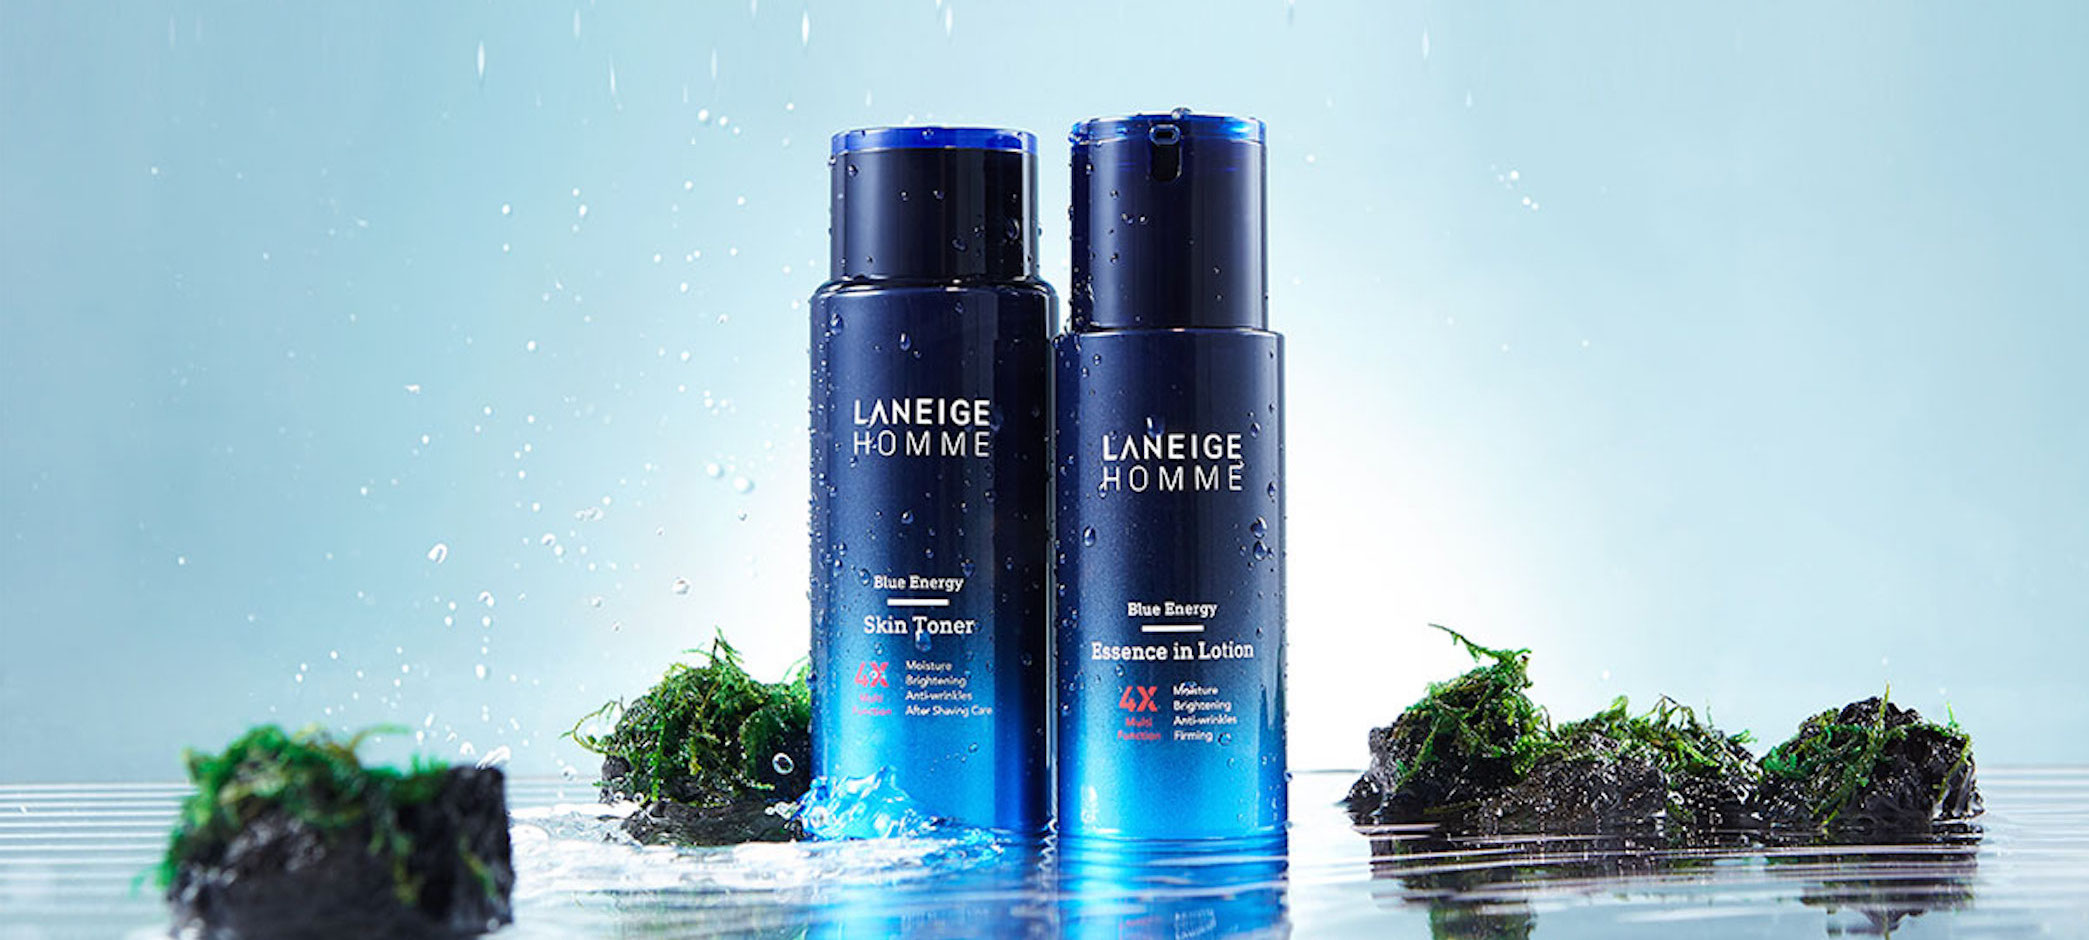 Mens grooming products: Laneige Homme Blue Energy